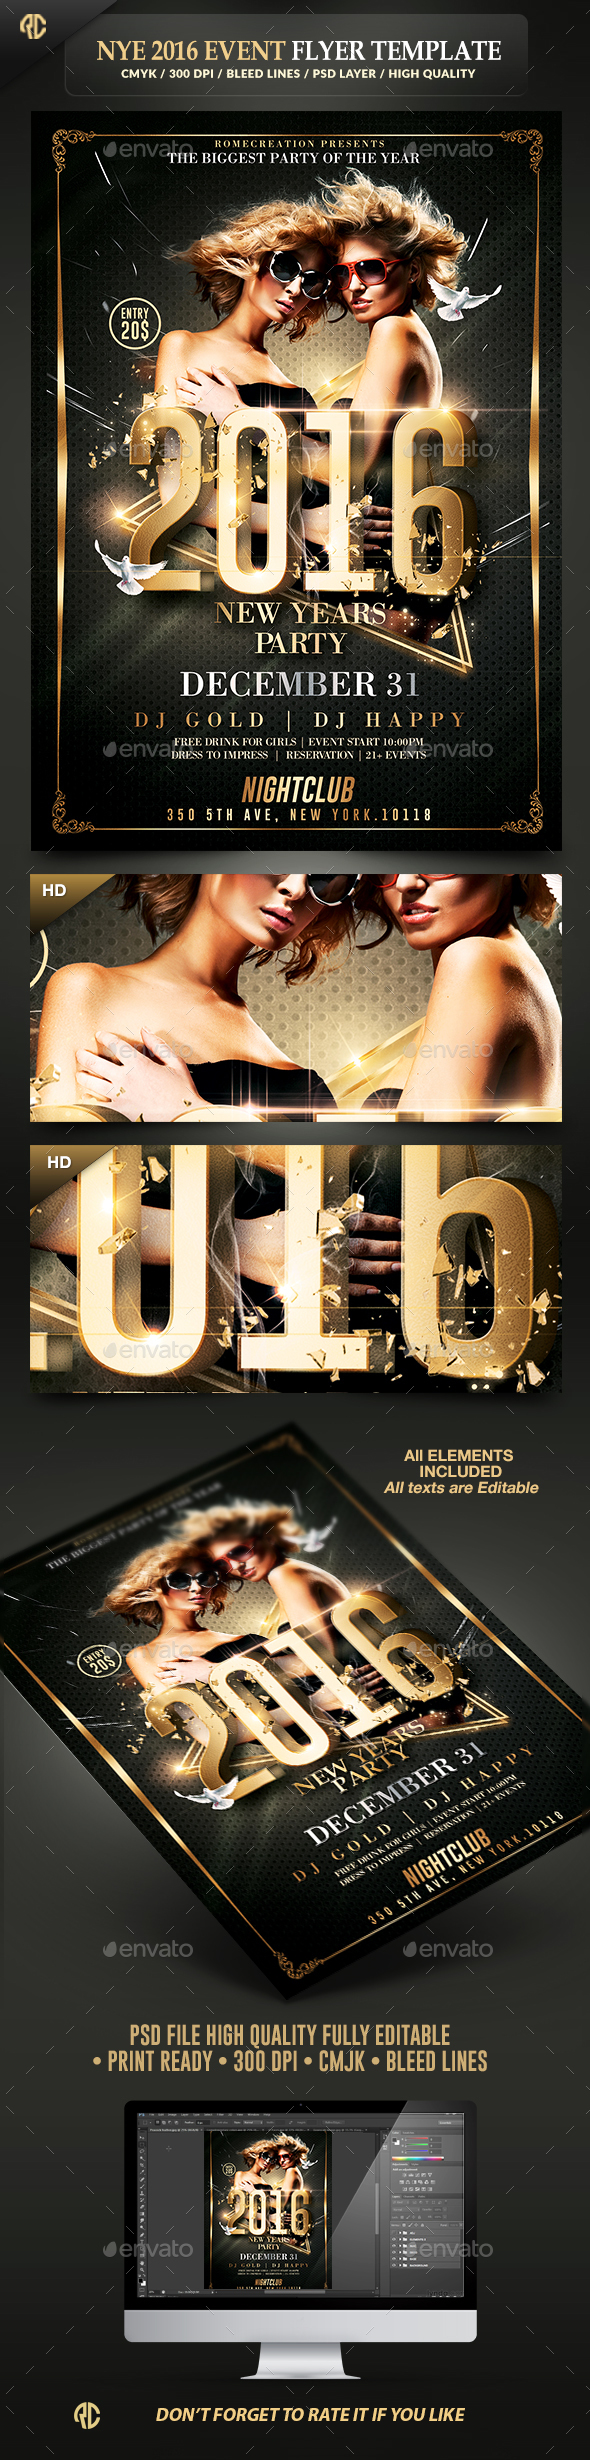 NYE Party | Classy Flyer Template - Events Flyers